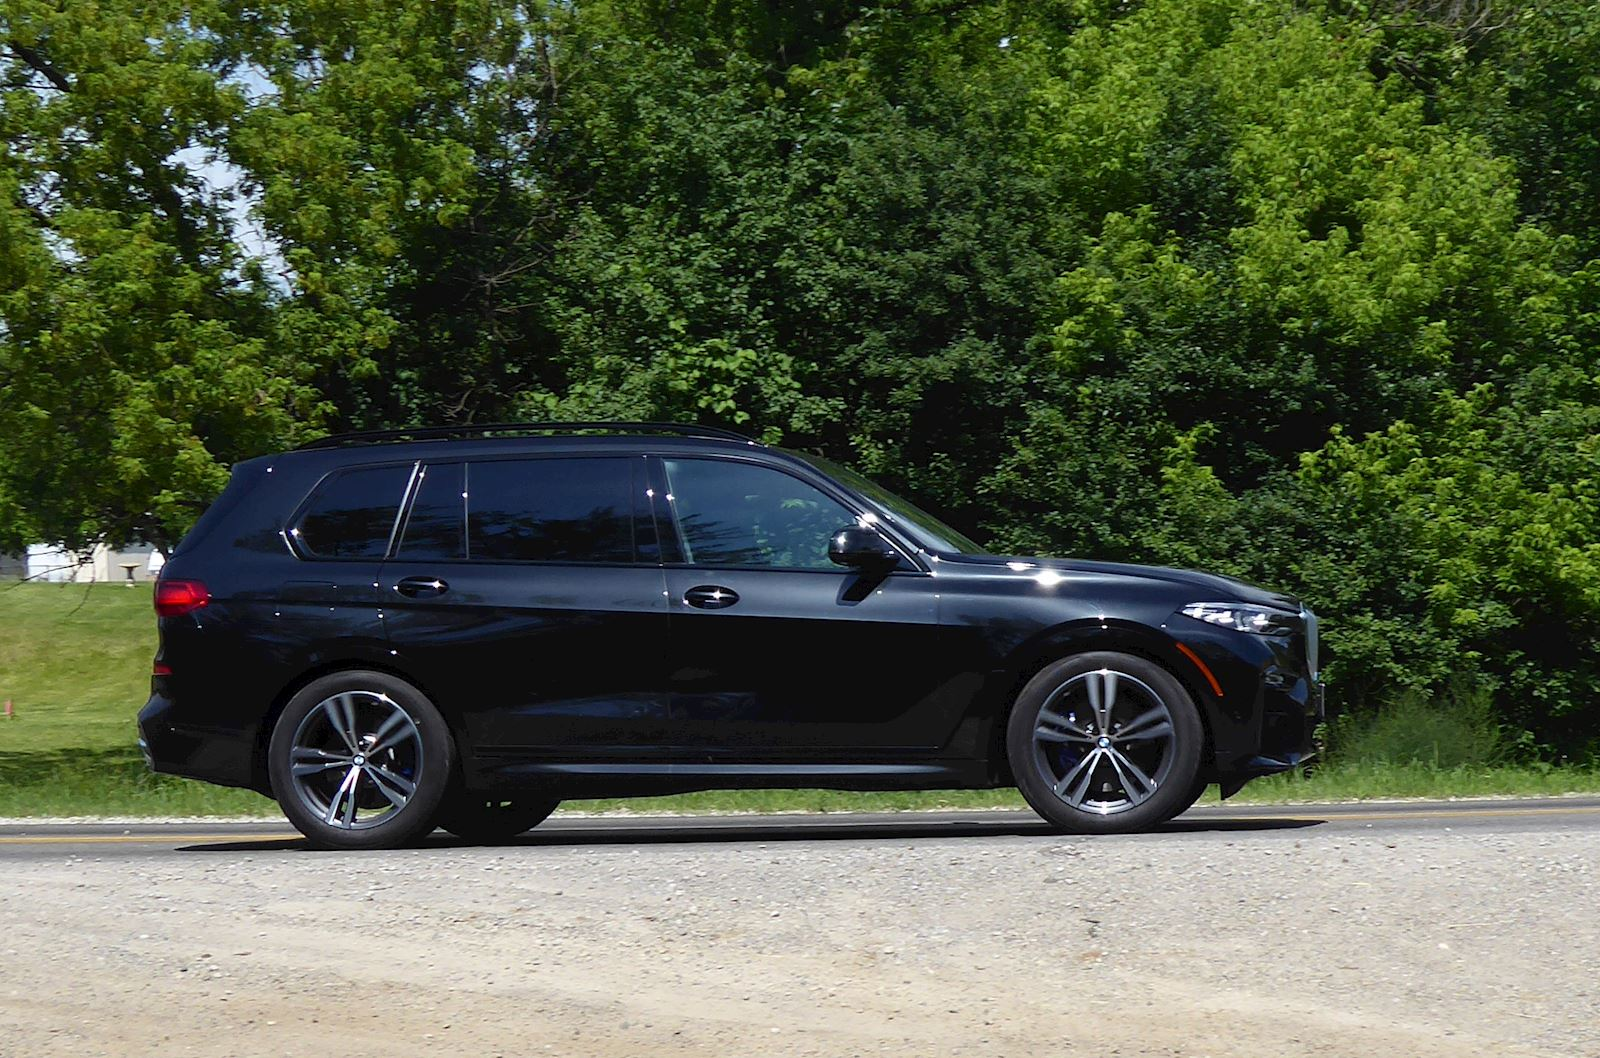 2019 BMW X7 side view photo